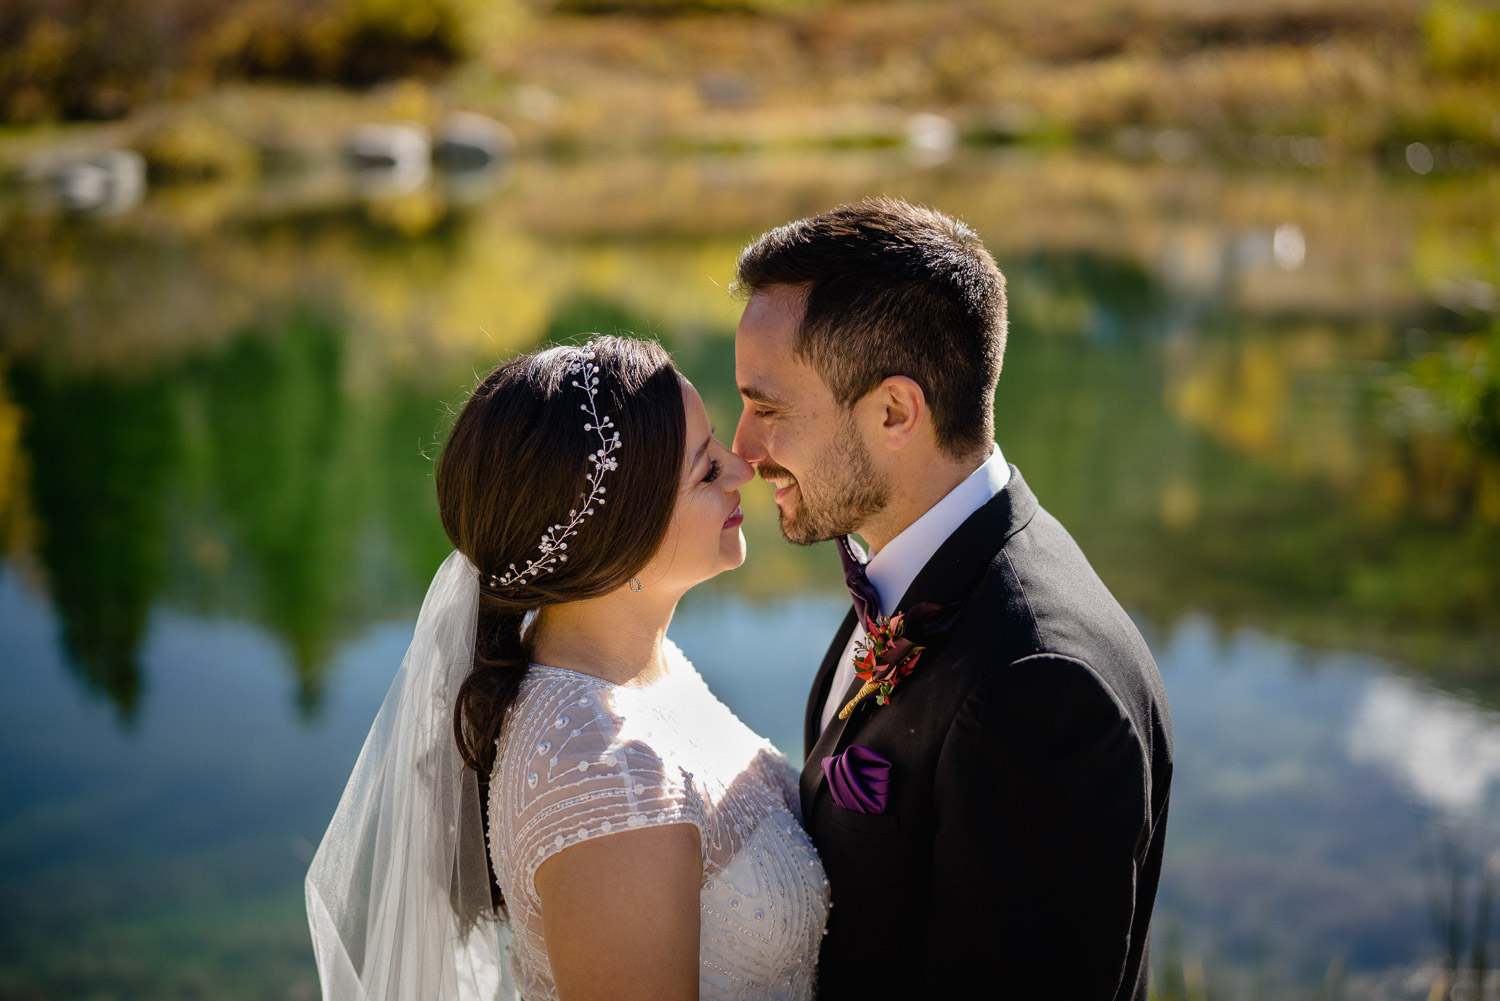 bride and groom embracing outside fall wedding solitude